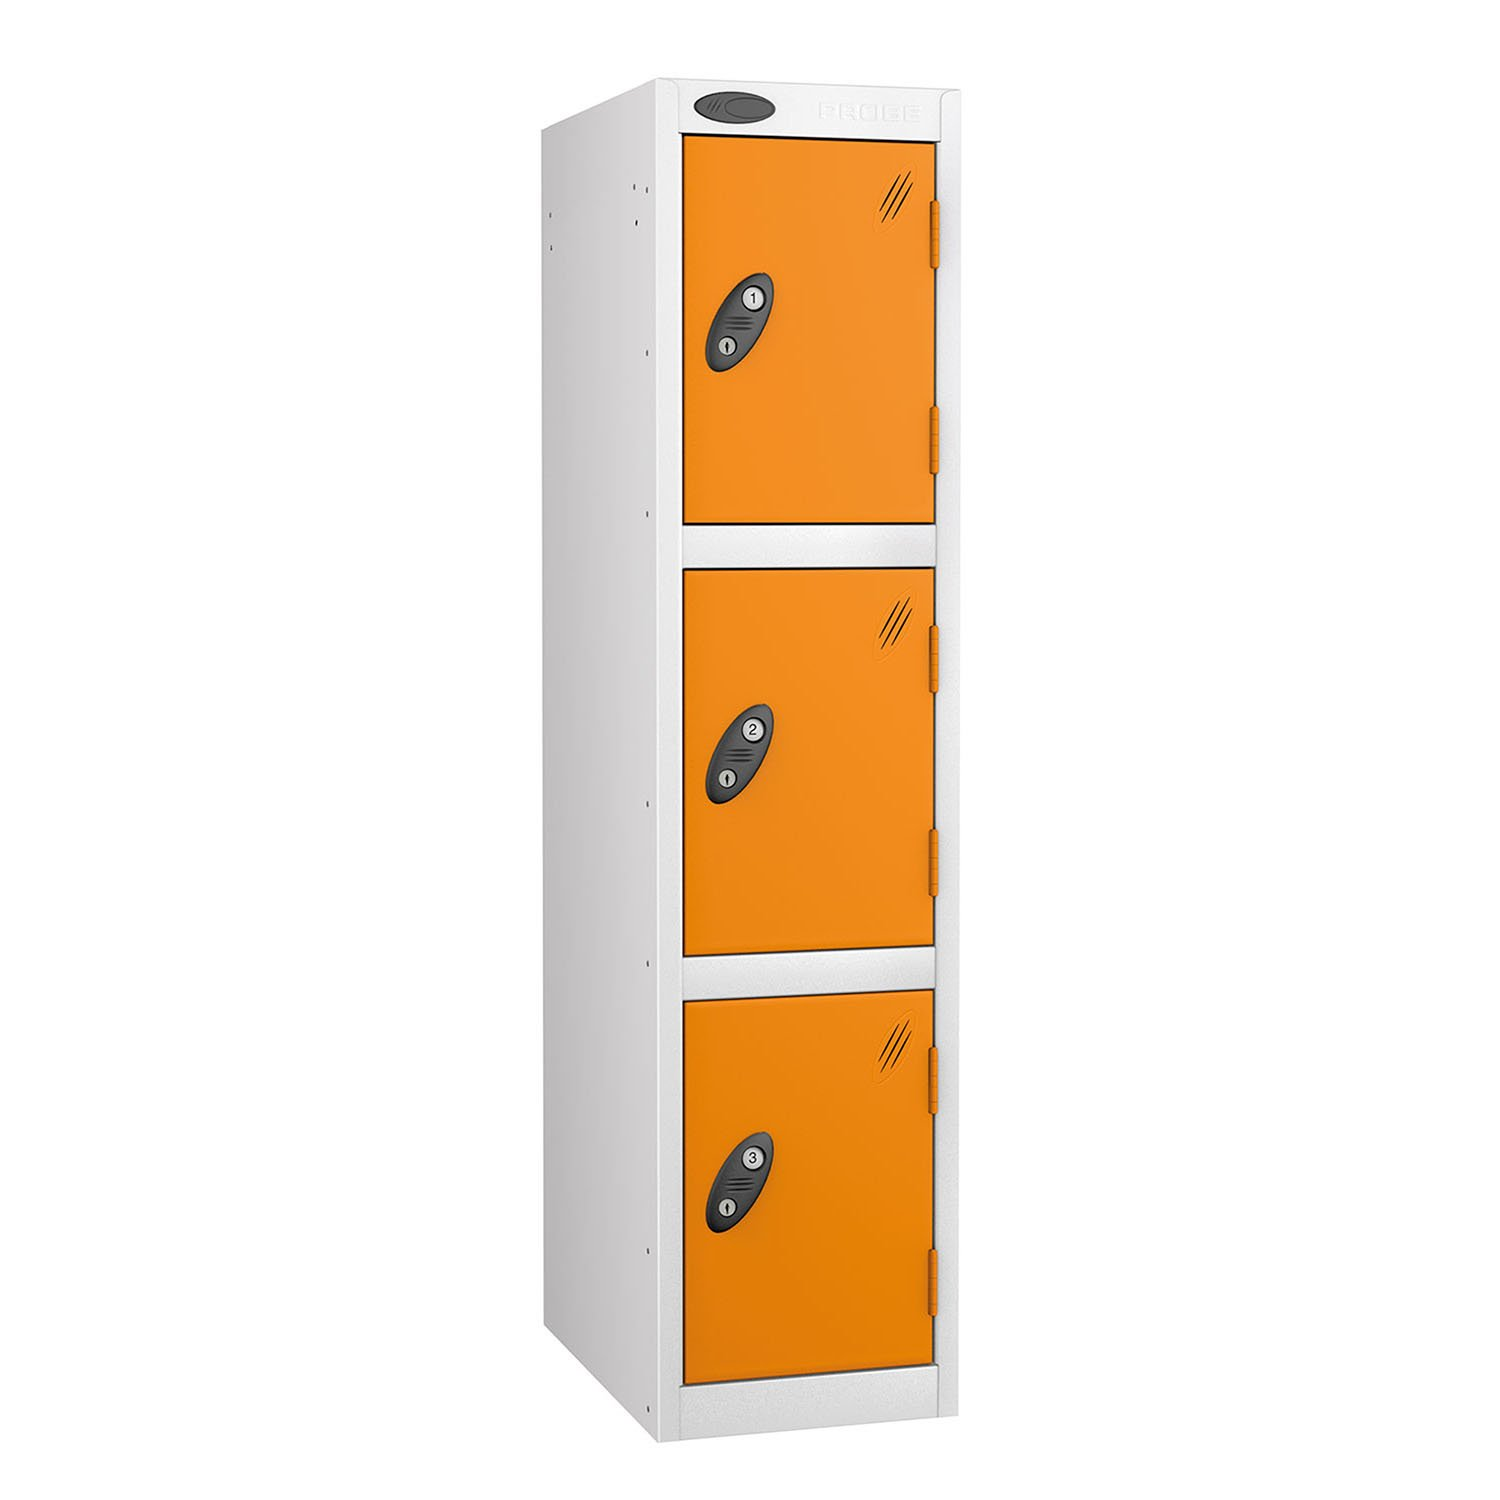 Probe 3 doors junior low locker in white-orange colour